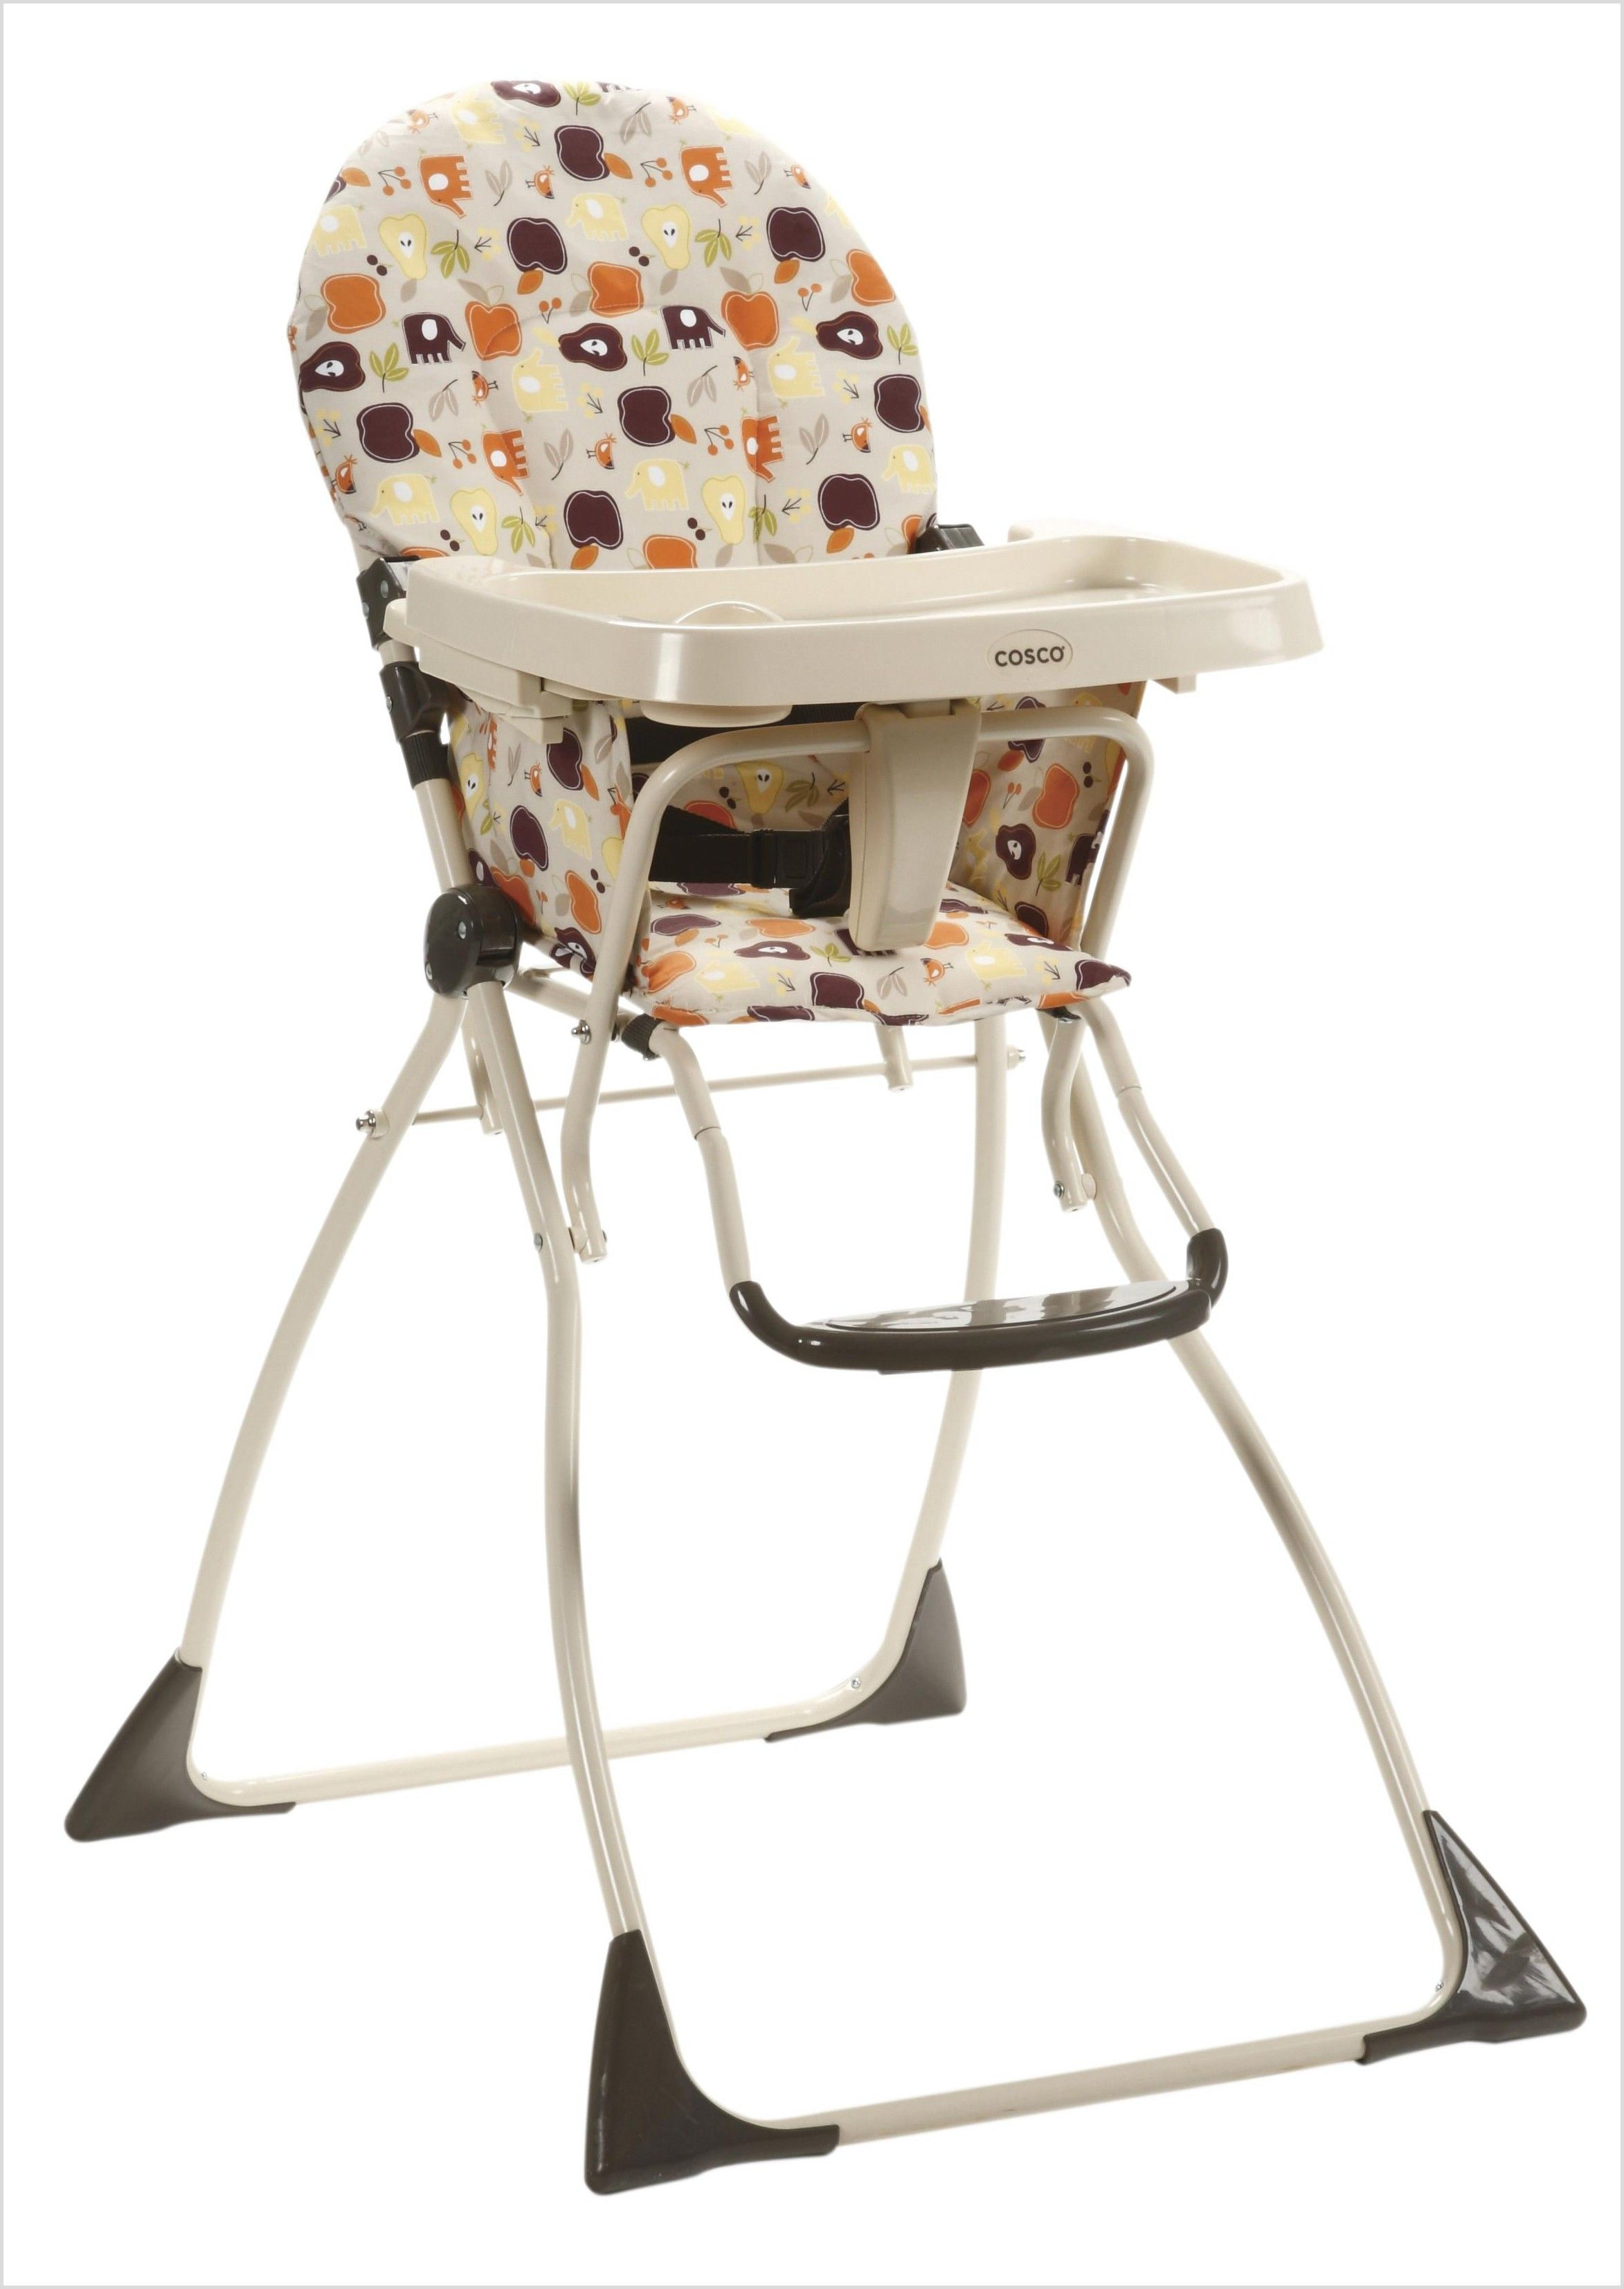 40 reference of cosco high chair folding in 2020 High